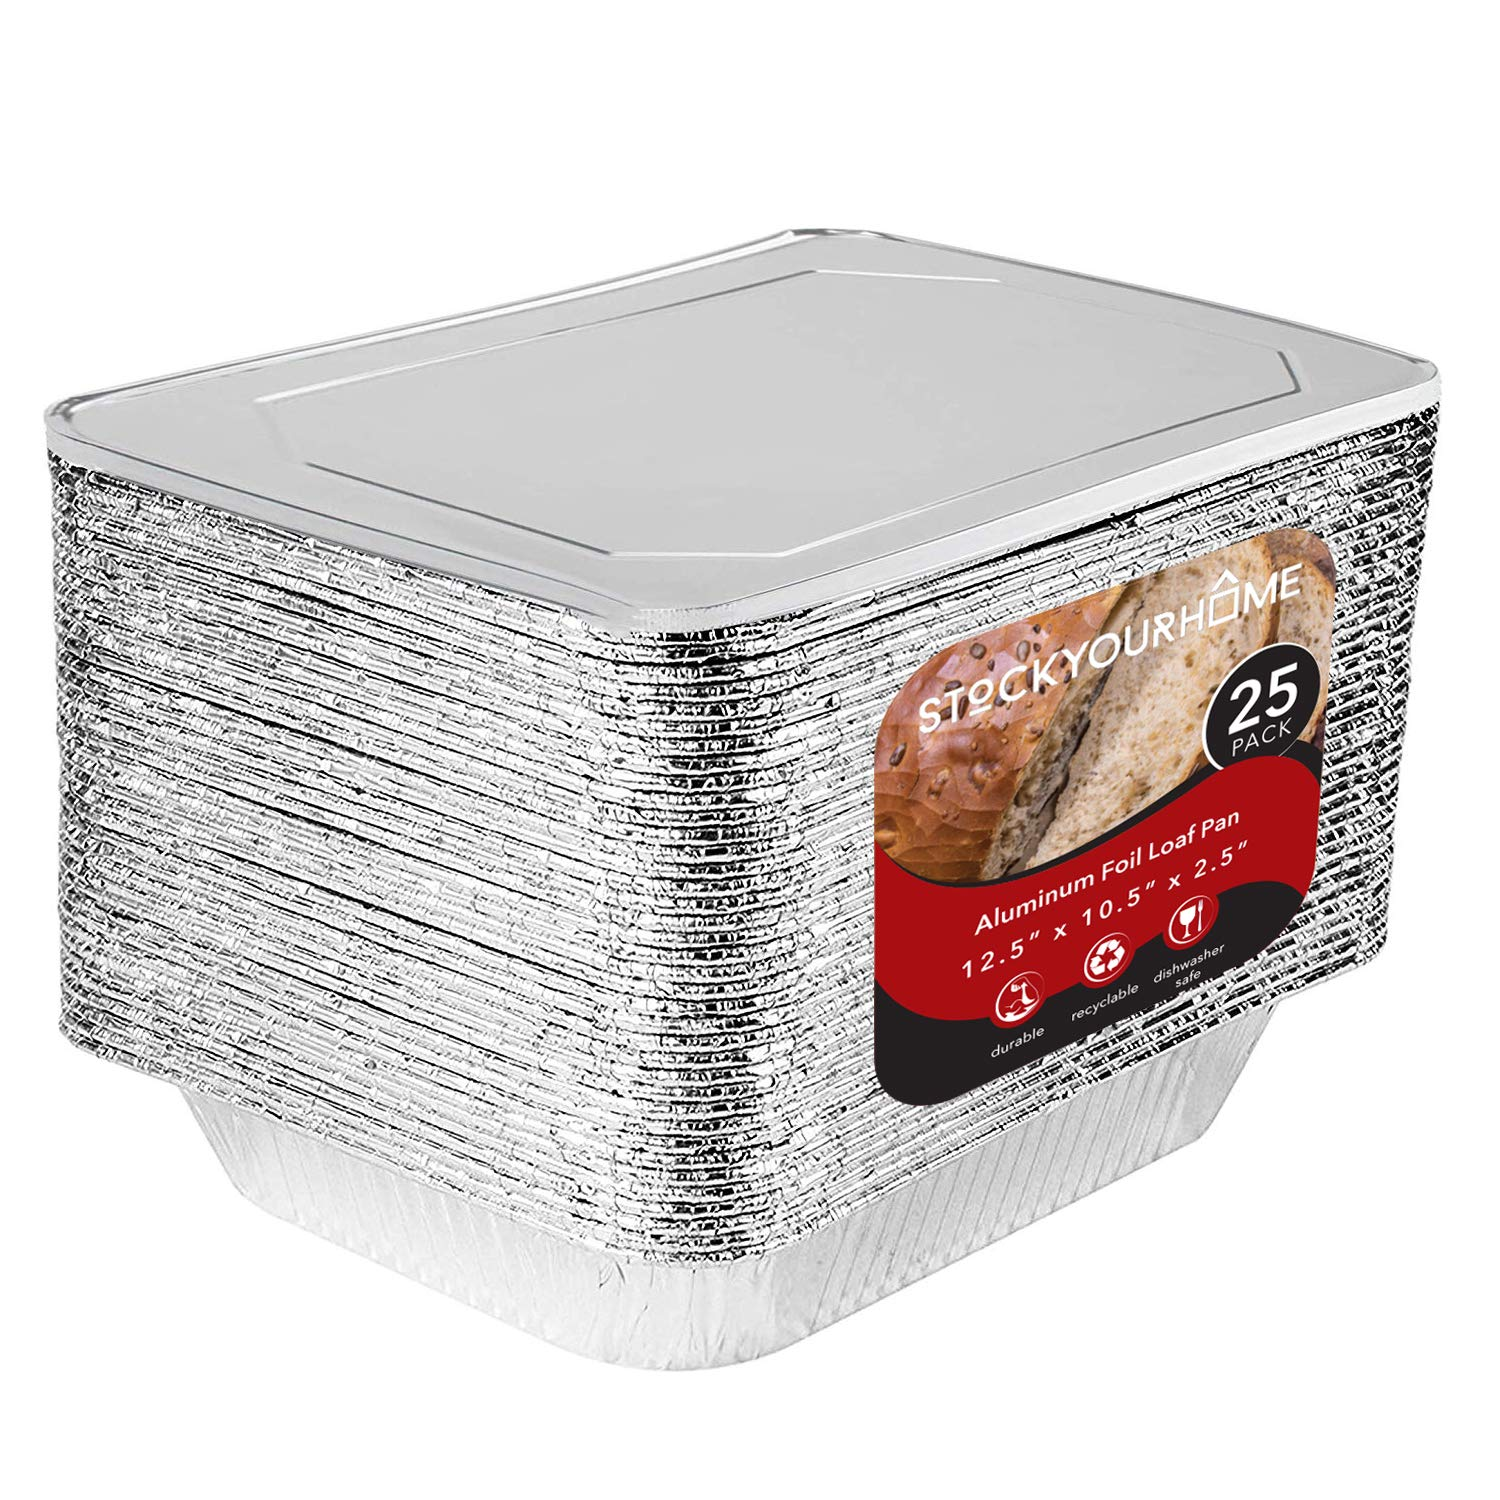 "9 x 13 Aluminum Foil Pans with Lids 25 Each - Disposable Steam Table Deep Pans Great for Restaurants, Parties, BBQ, Catering, Baking, Cooking, Heating, Storing, Prepping Food – 12.5"" x 10.25"" x 2.5"""